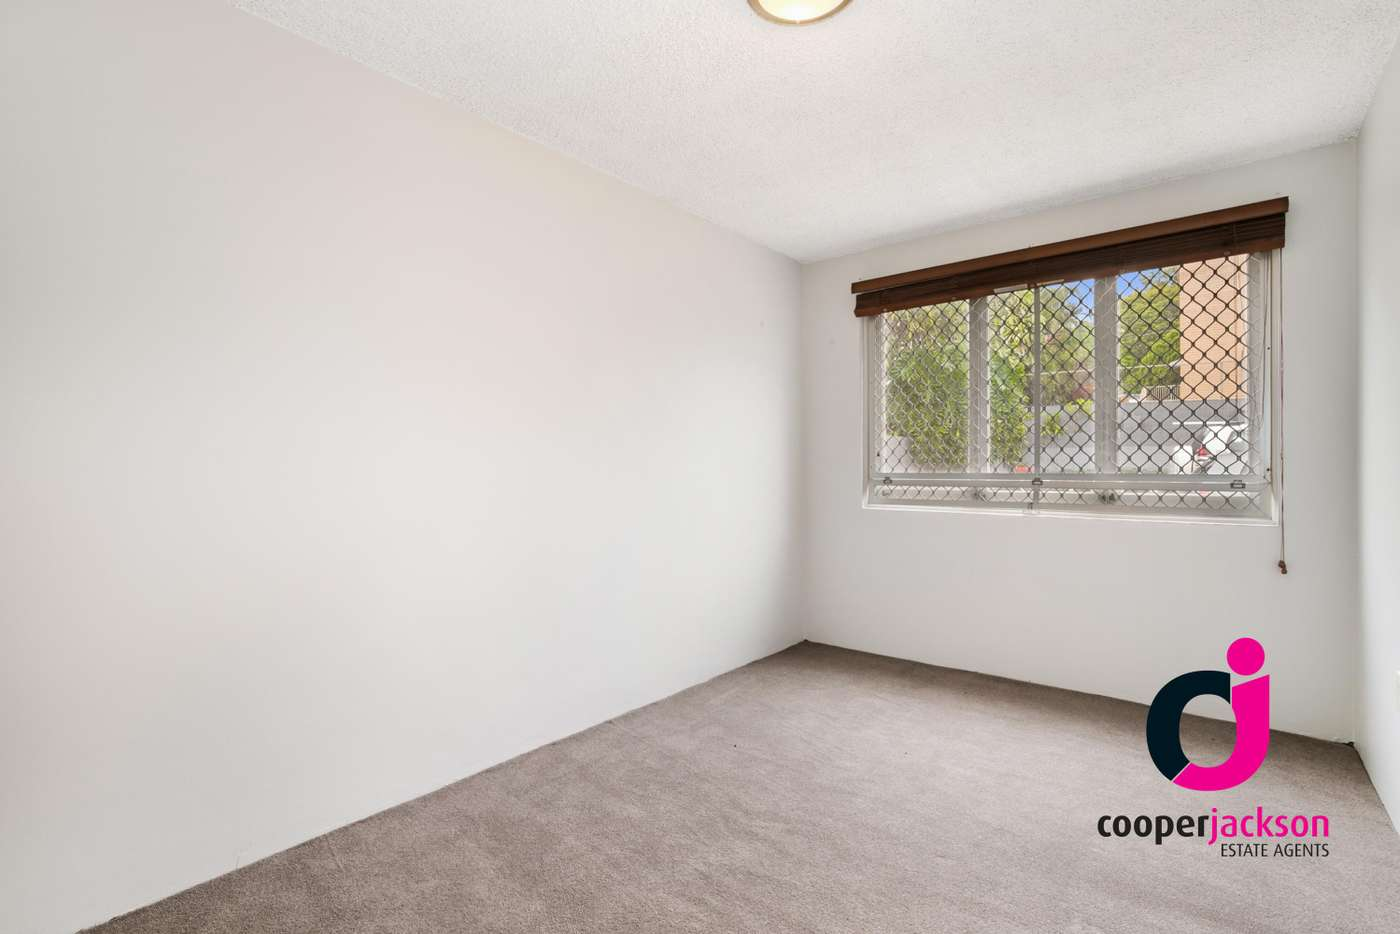 Sixth view of Homely apartment listing, 587 SANDGATE ROAD, Clayfield QLD 4011